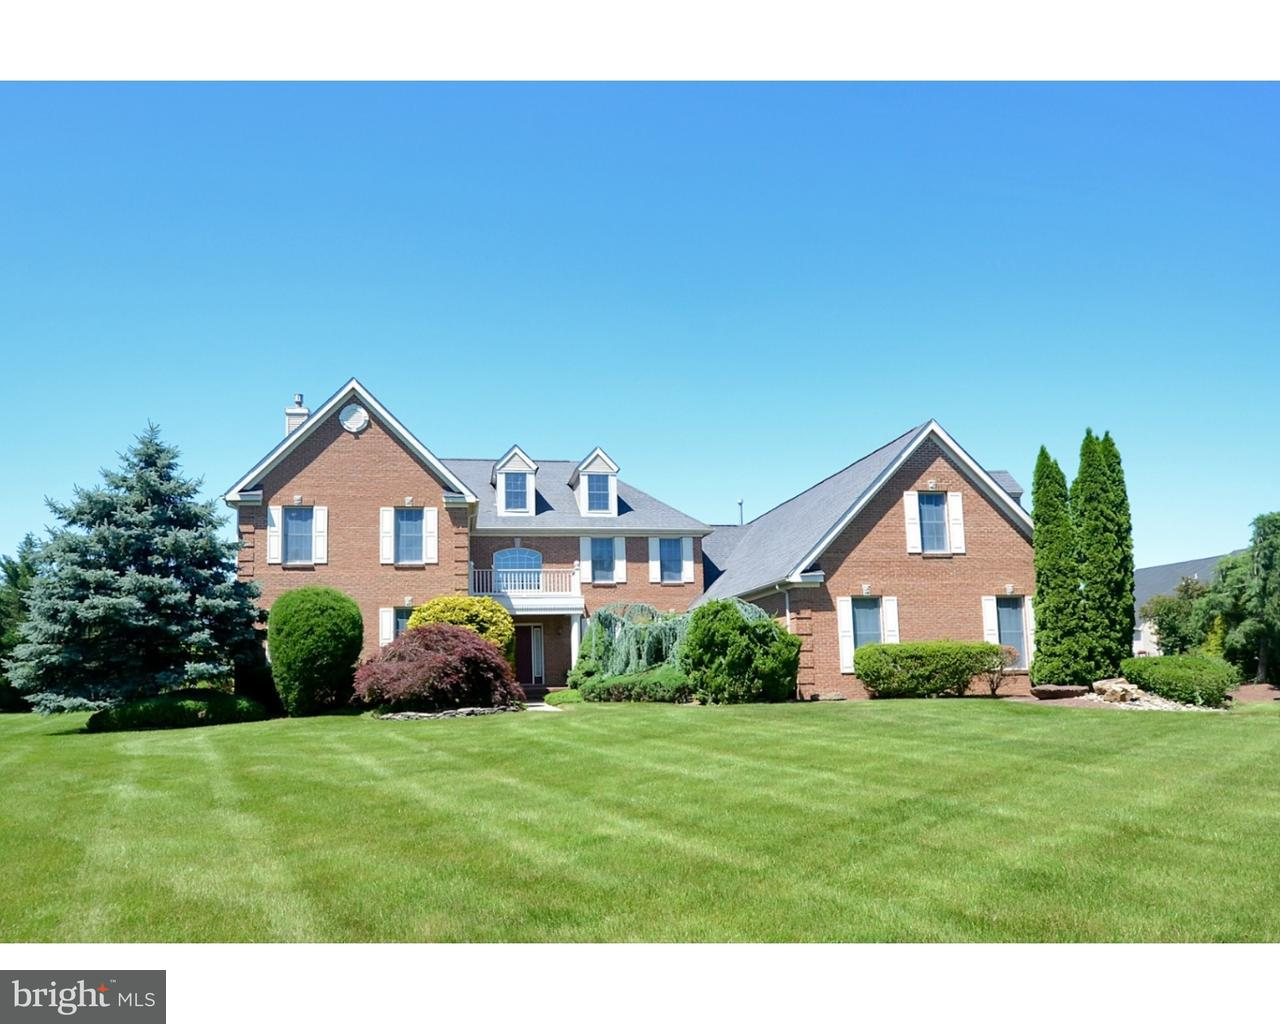 Single Family Home for Sale at 7 SPARROW Drive West Windsor, New Jersey 08550 United StatesMunicipality: West Windsor Twp